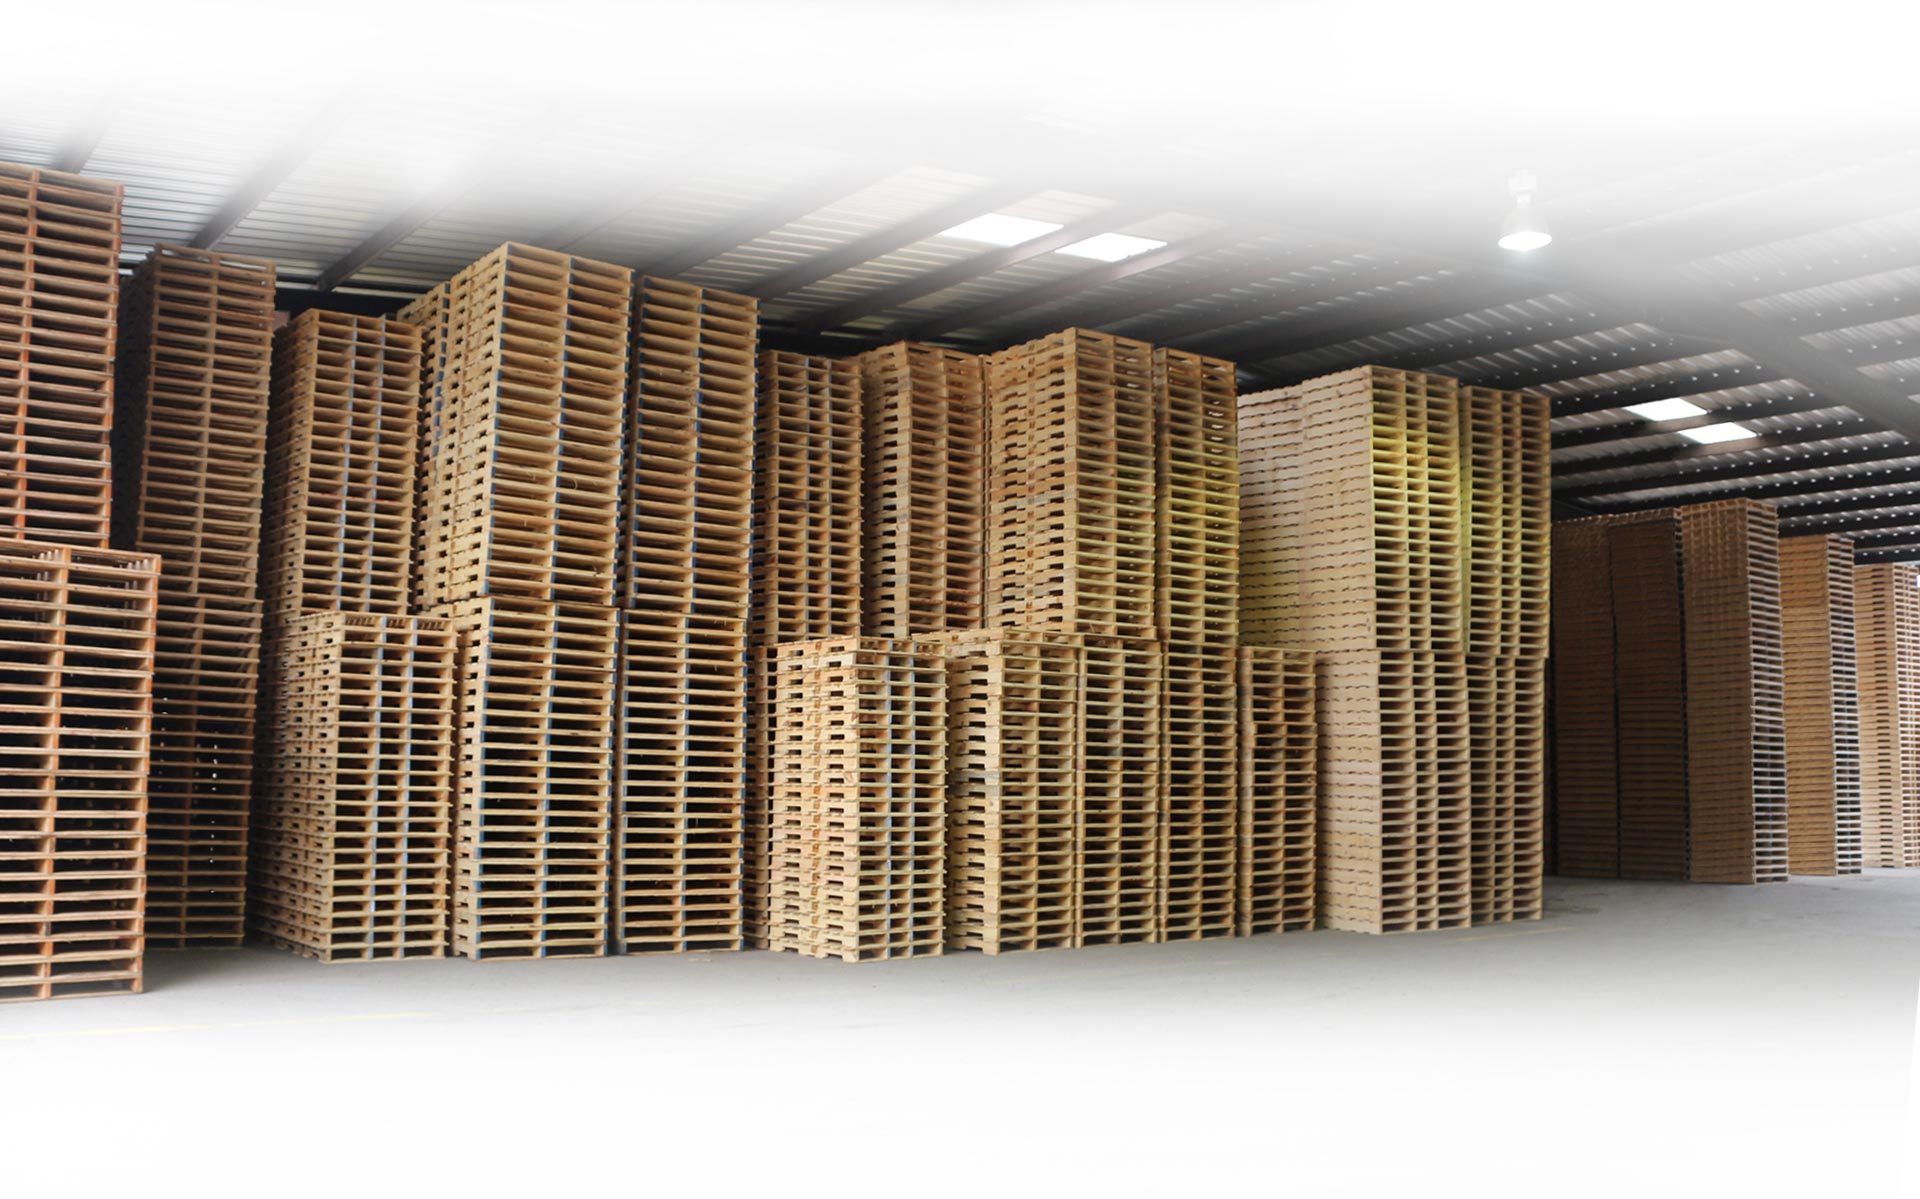 Smith Pallet | Quality Pallets Since 1949